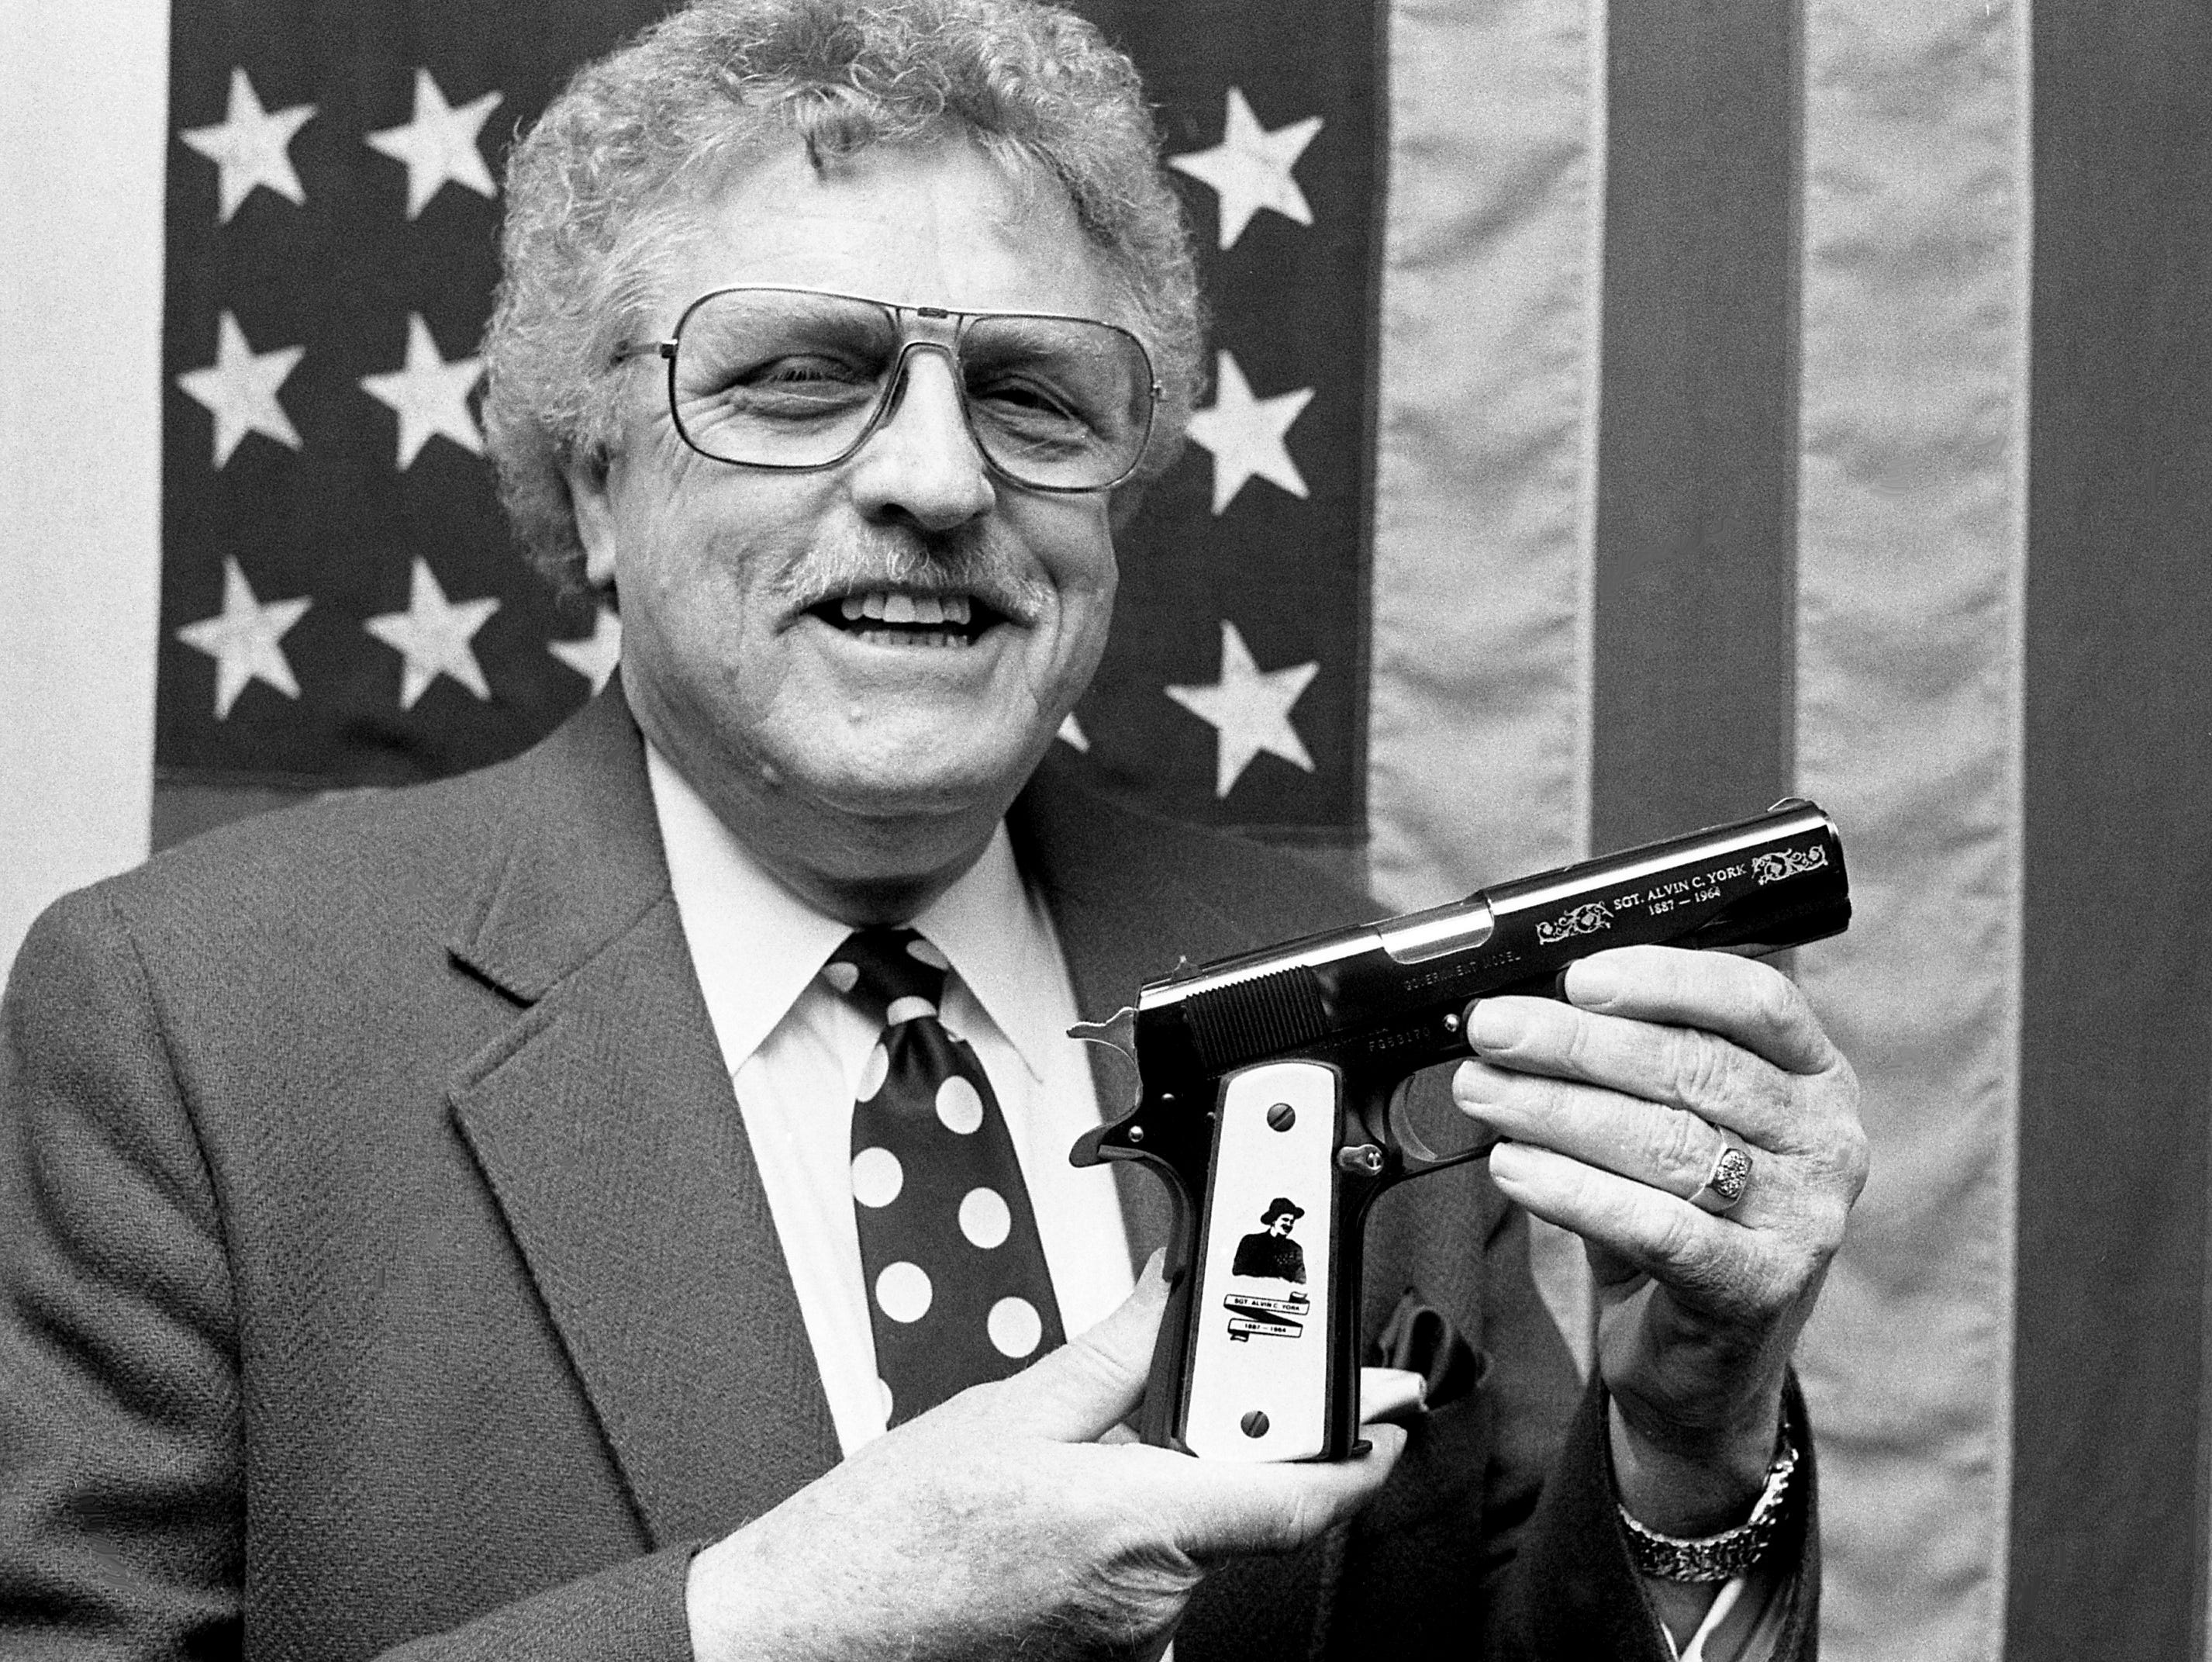 George York holds the Colt. 45 commemorating his father, World War I hero Sgt. Alvin C. York, in the Tennessee State Museum display at the War Memorial building on March 1, 1989. The pistol, one of 300, was located and given to the museum at the request of York.